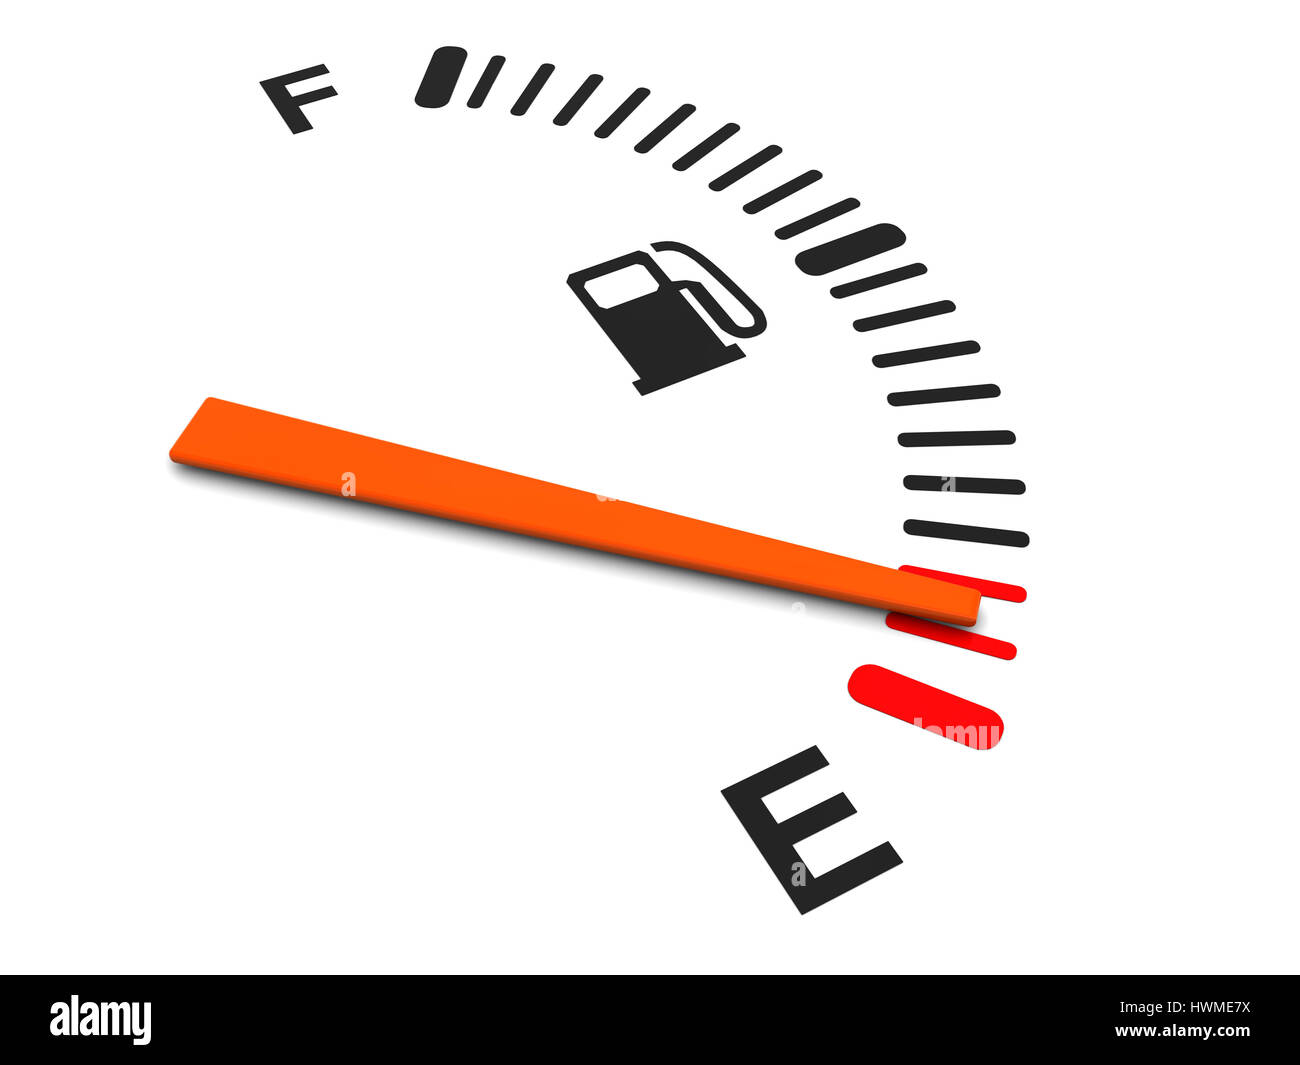 3d illustration of generic fuel meter over white background - Stock Image